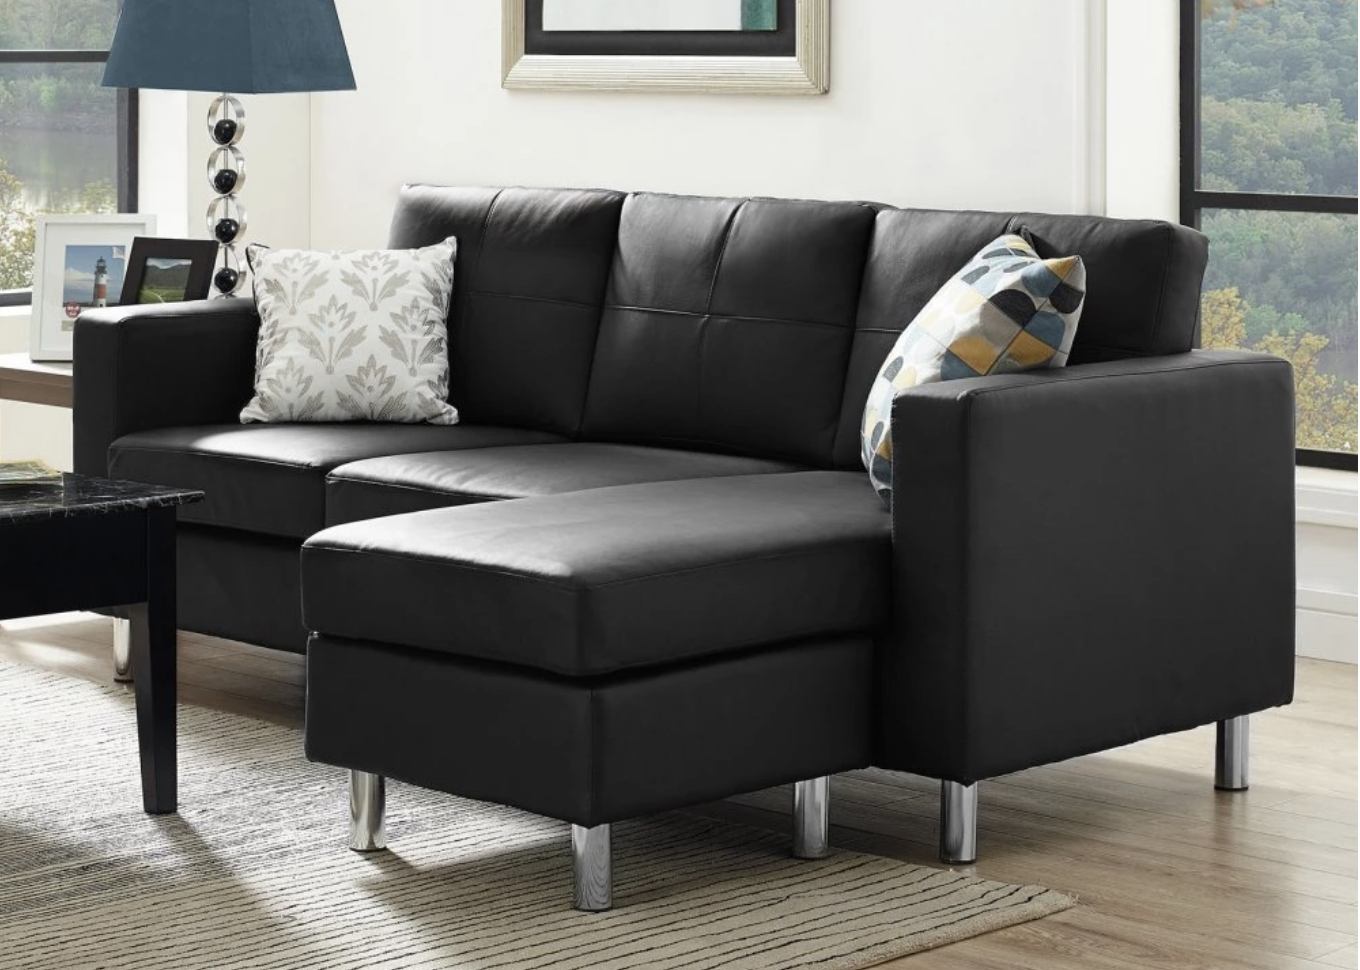 Widely Used 75 Modern Sectional Sofas For Small Spaces (2018) Intended For Black Sectional Sofas (View 18 of 20)